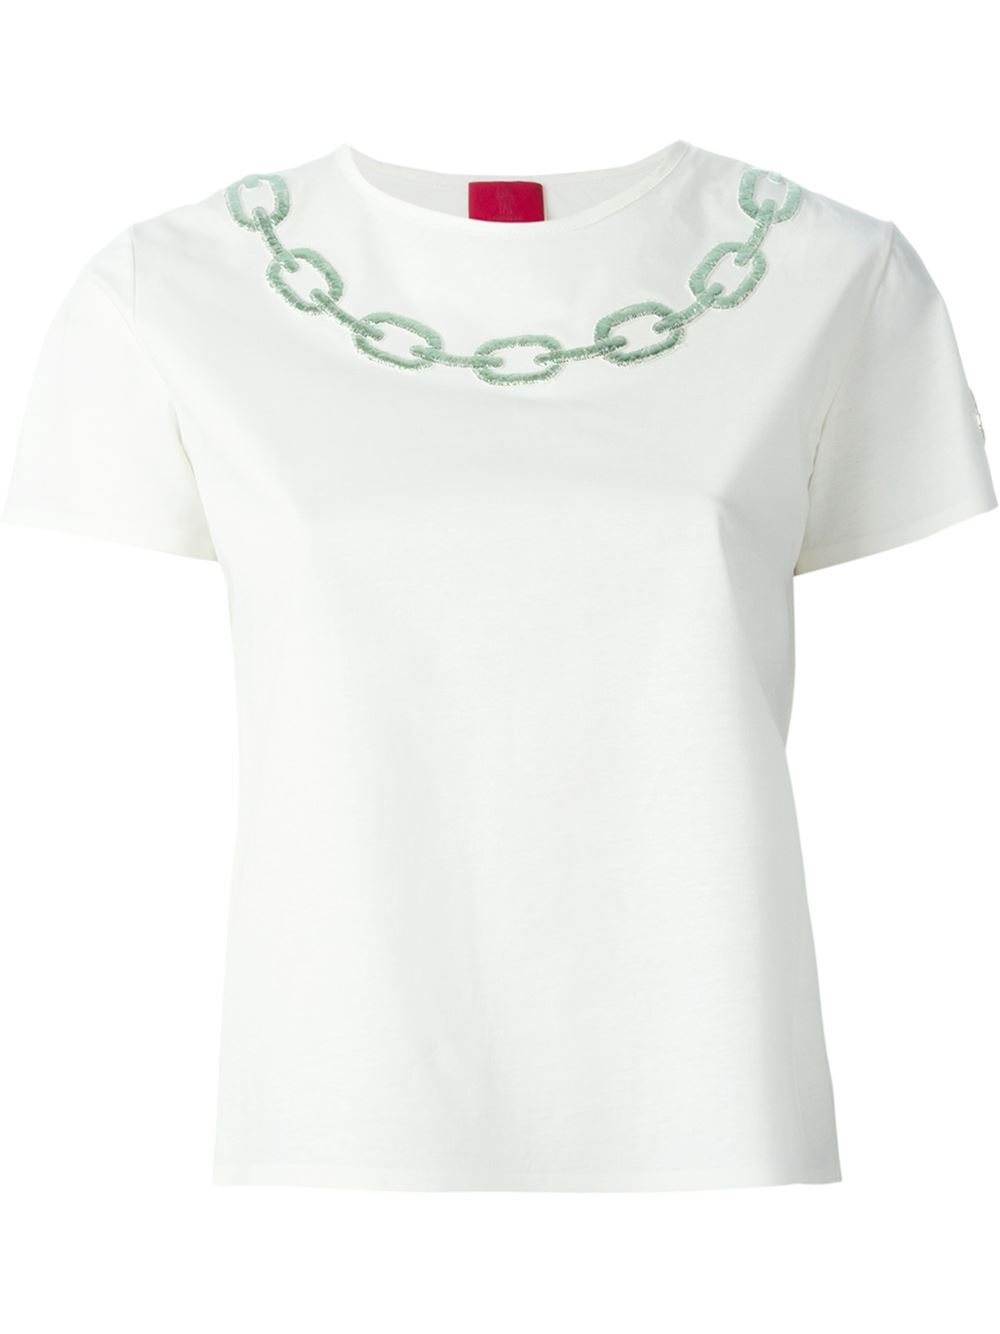 Moncler gamme rouge 39 ambre 39 t shirt in white lyst for Off white moncler t shirt